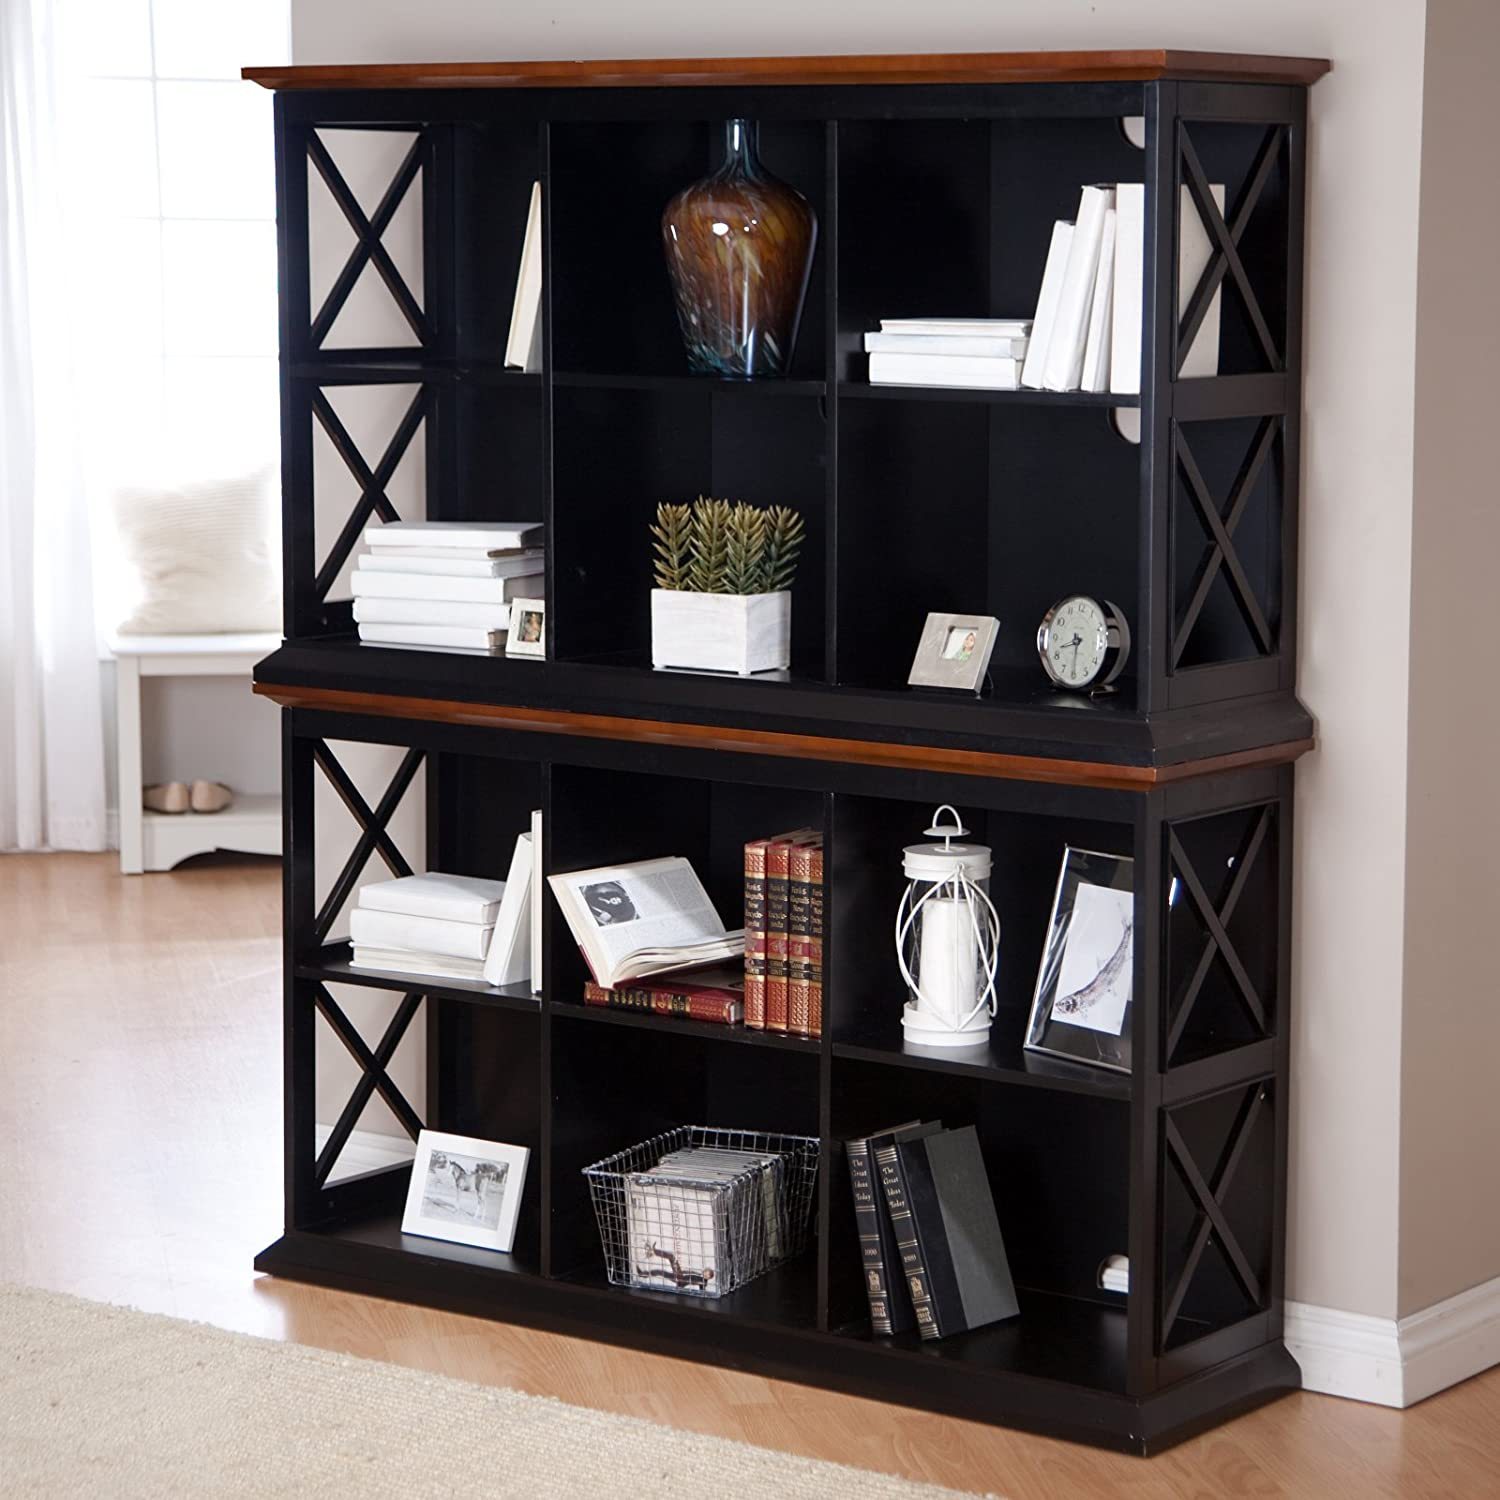 case quodes wp bookcase hexagon nendo by side bookcases pedestal table project show